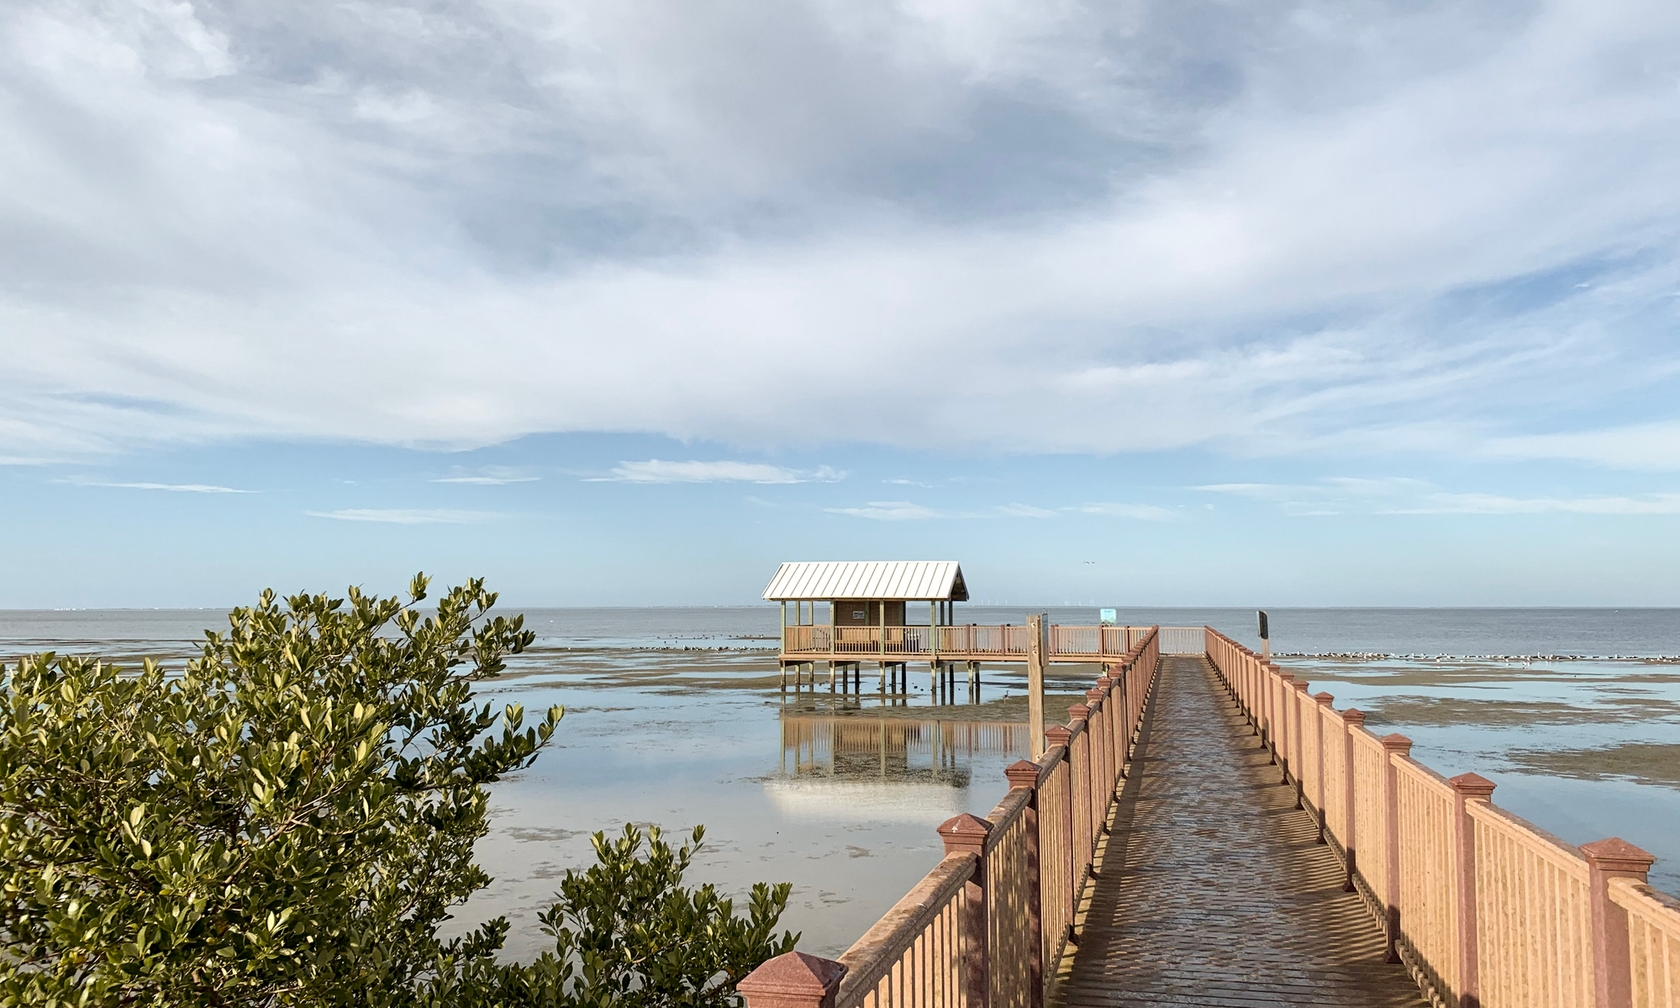 Vacation rental condos in South Padre Island